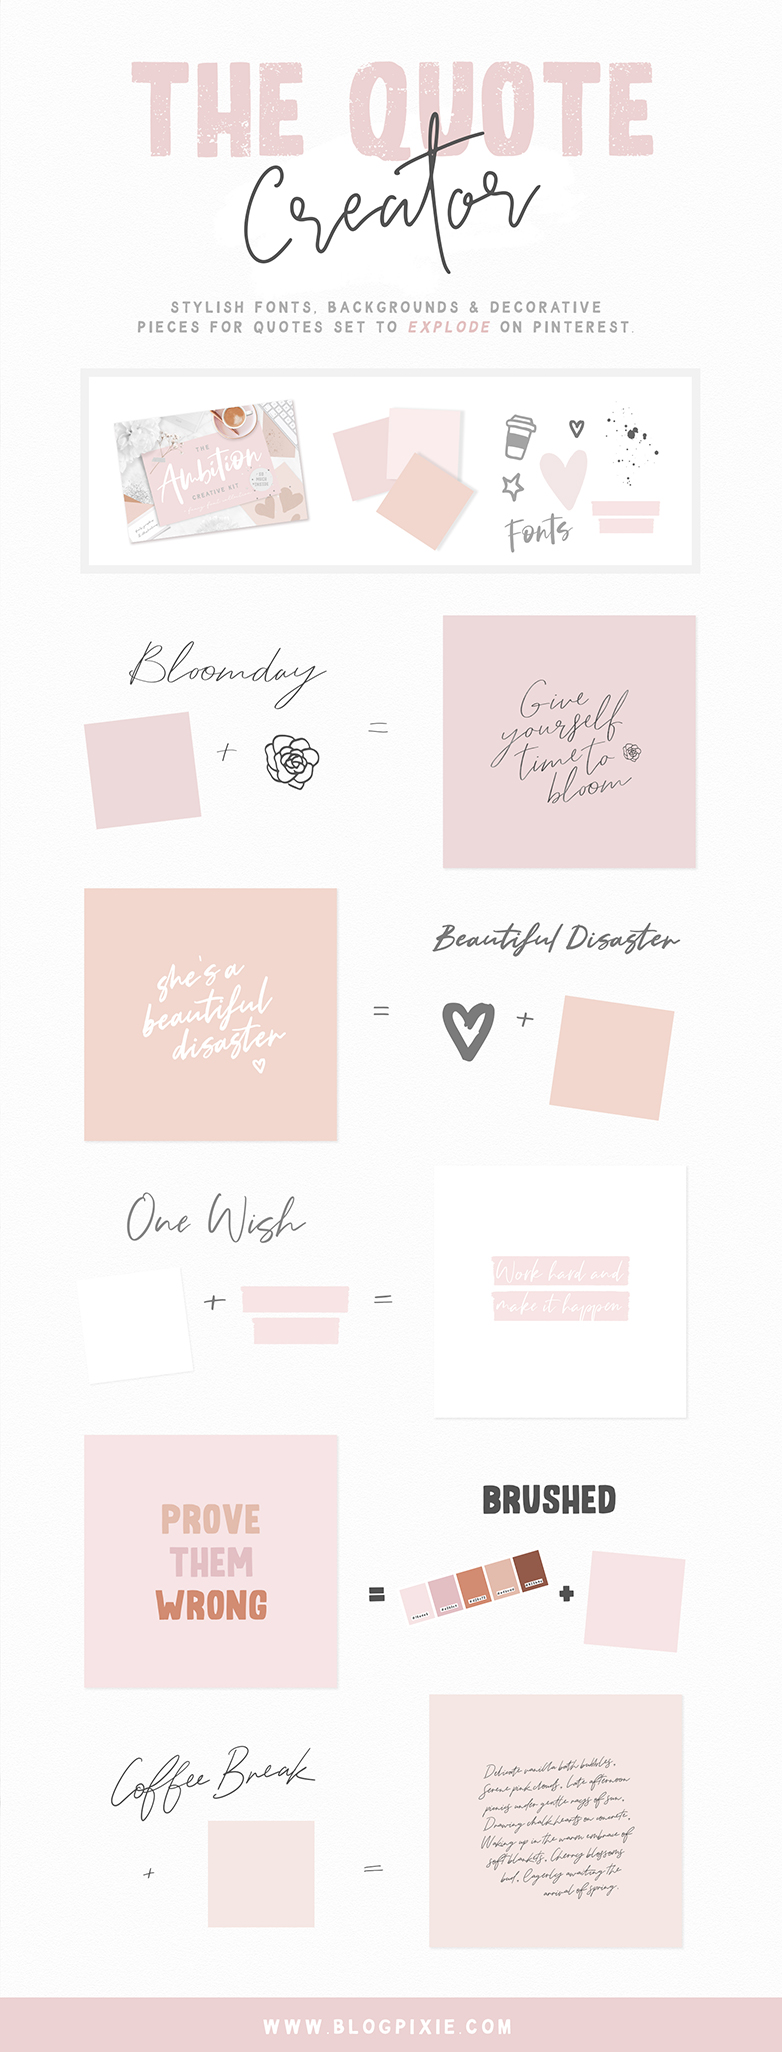 Font Bundle & Collage Graphics - The Ambition Creative Kit by Blog Pixie